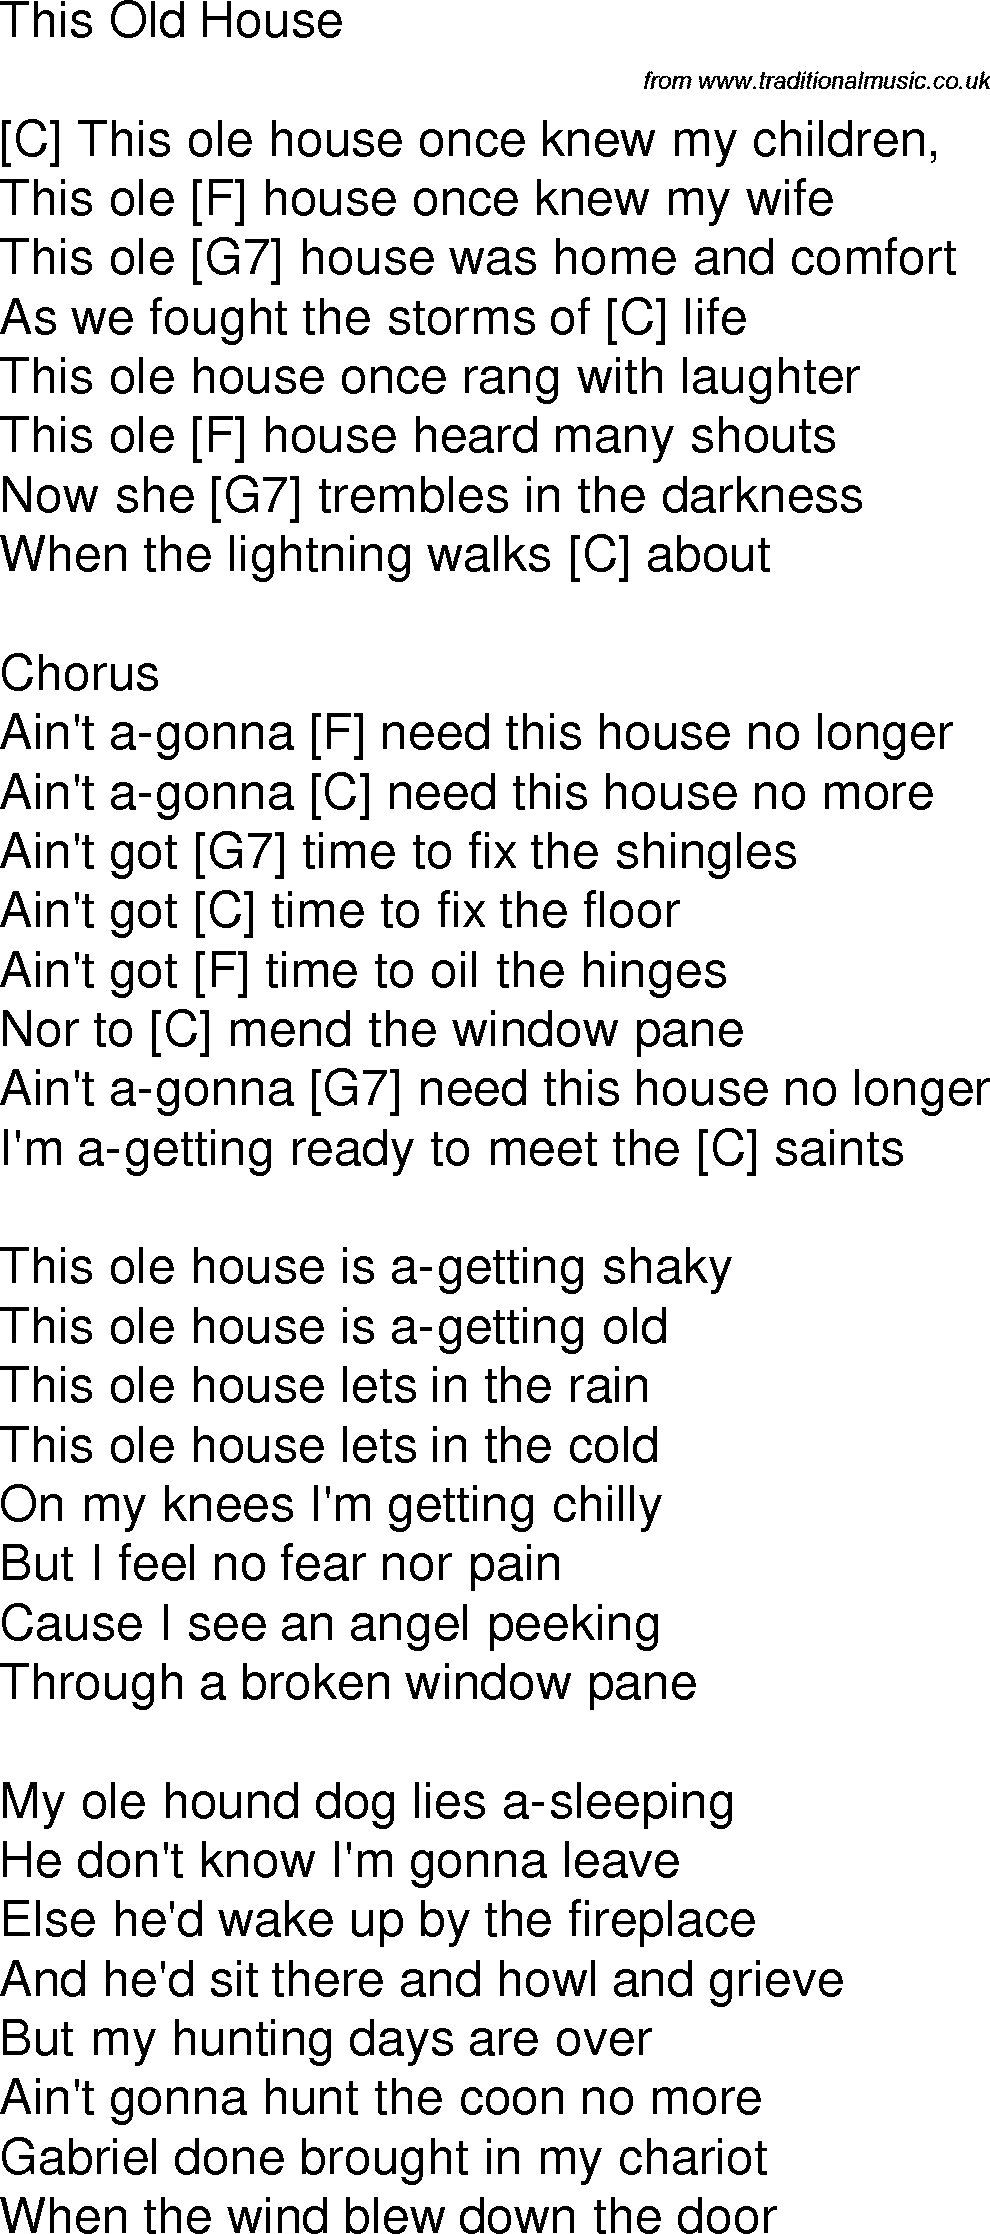 old time song lyrics with guitar chords for this old house c